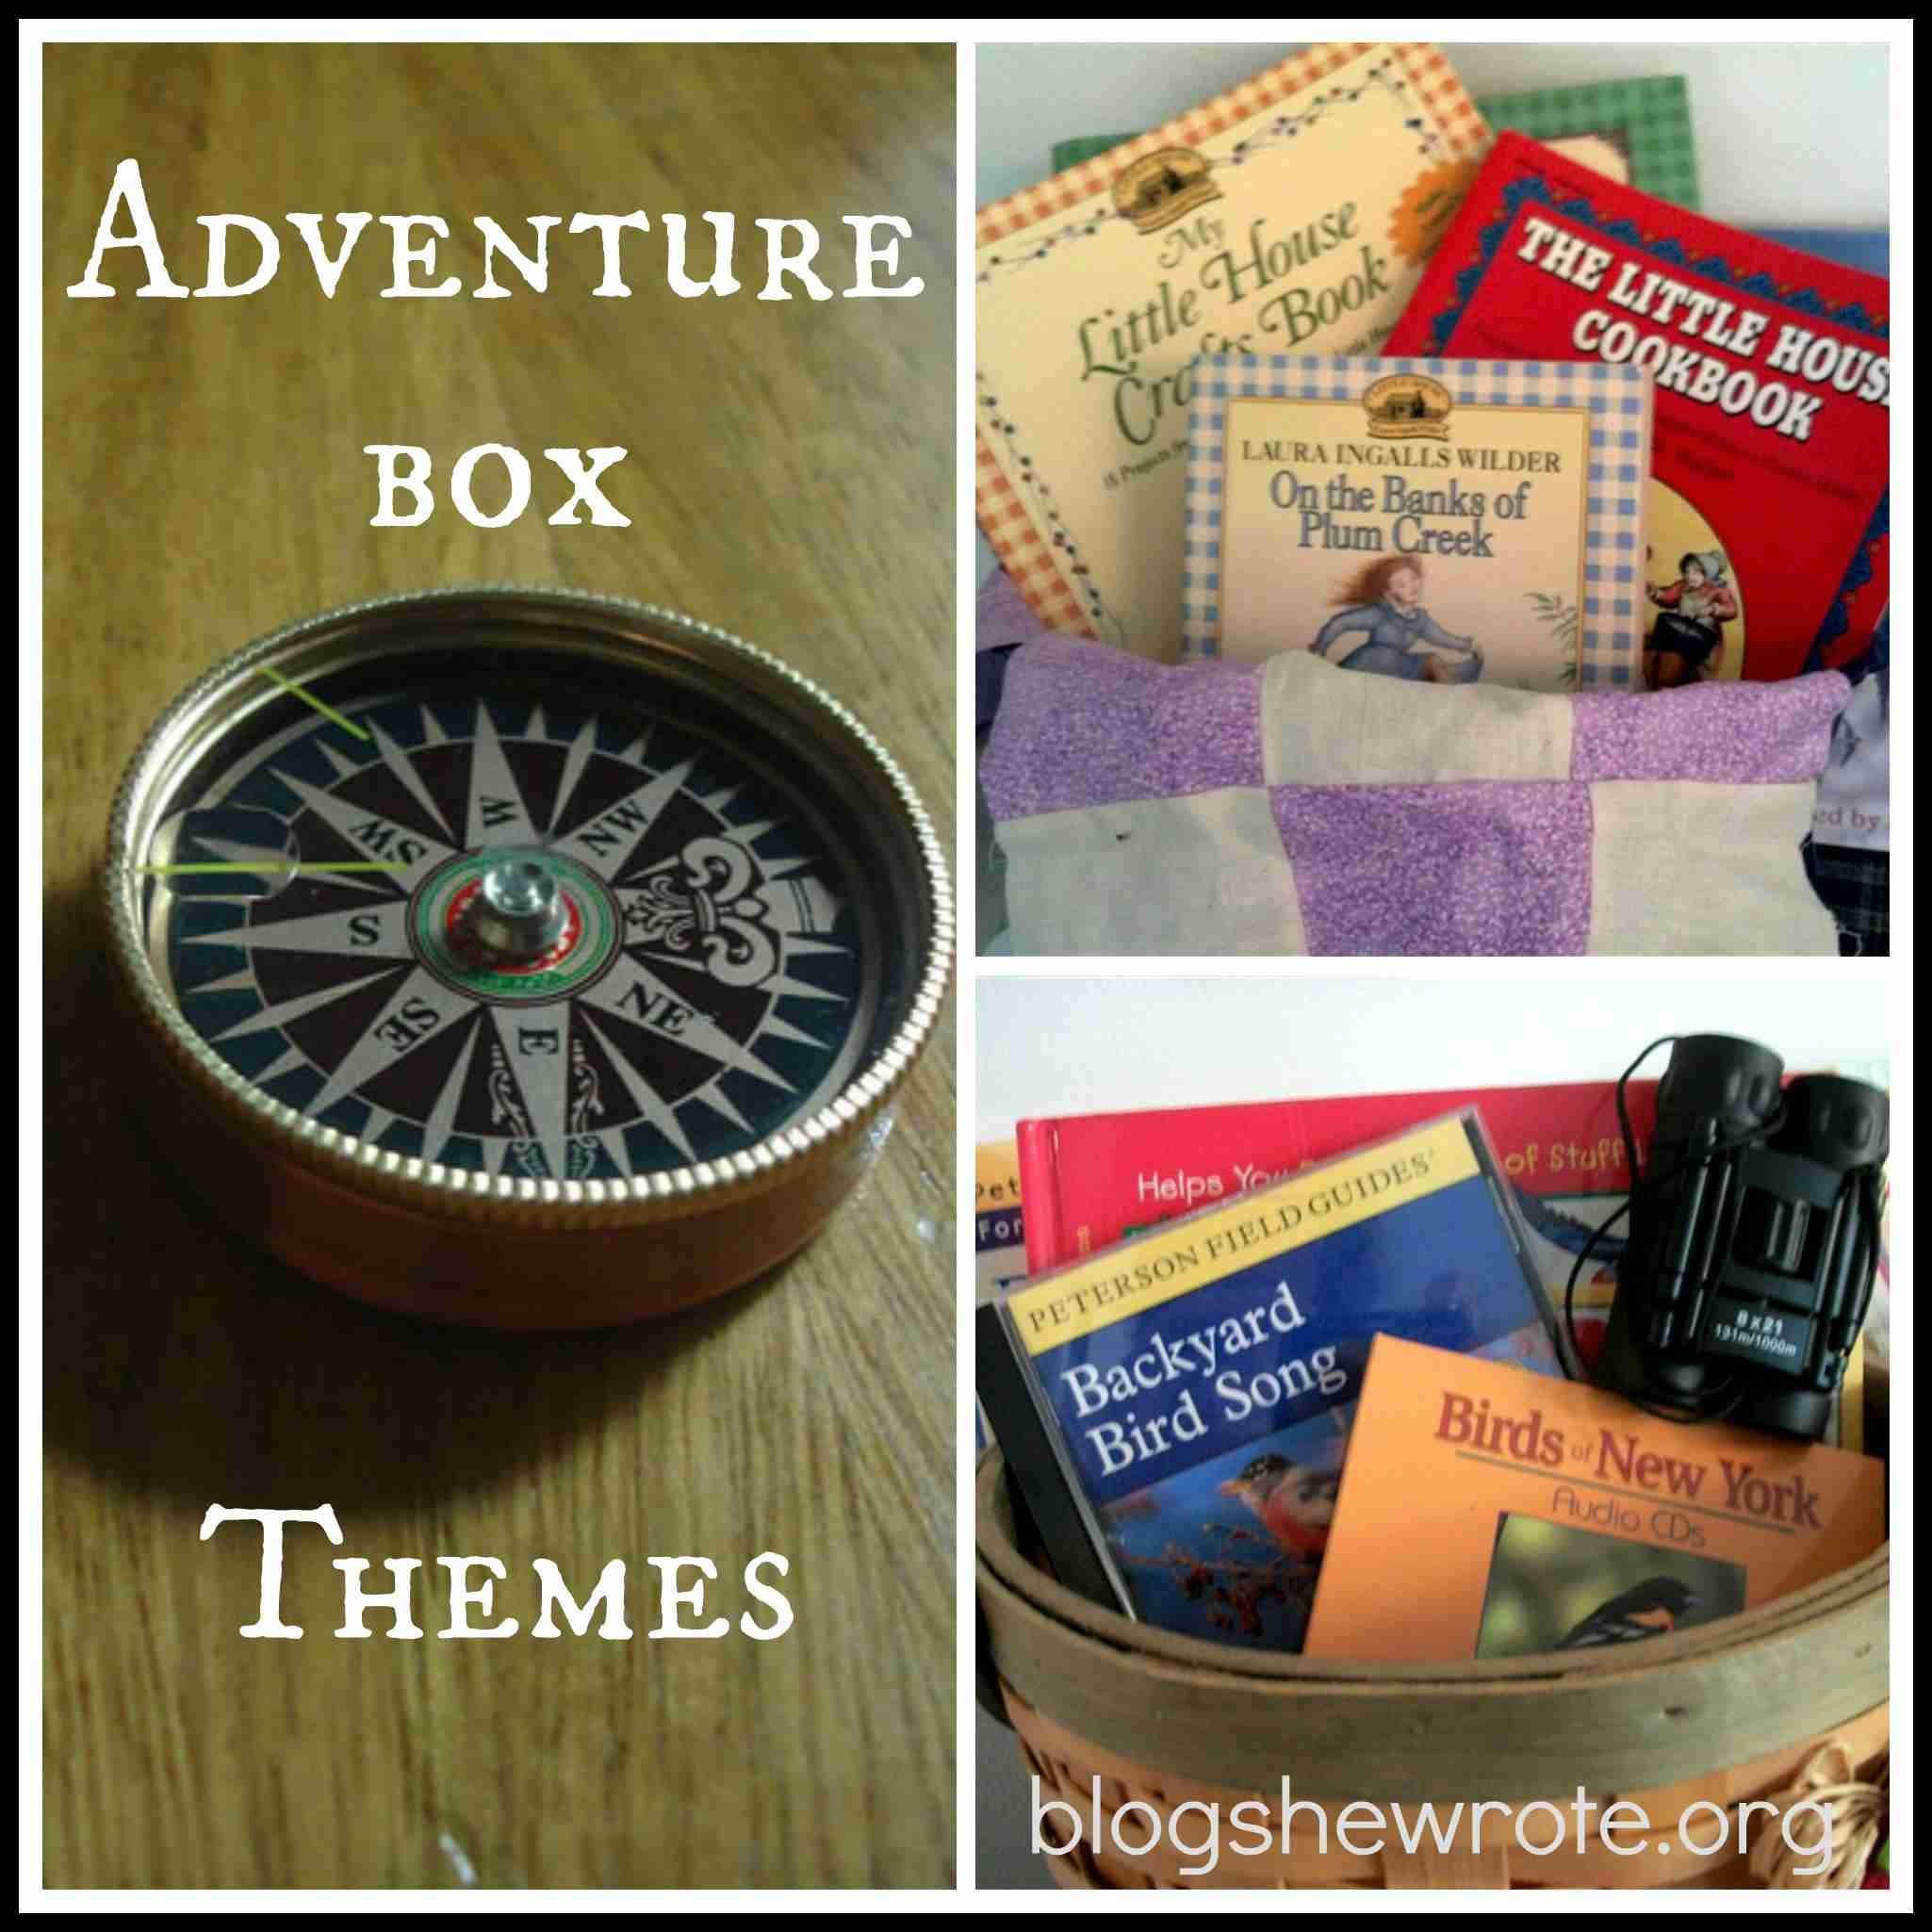 Blog She Wrote: Adventure Box Themes